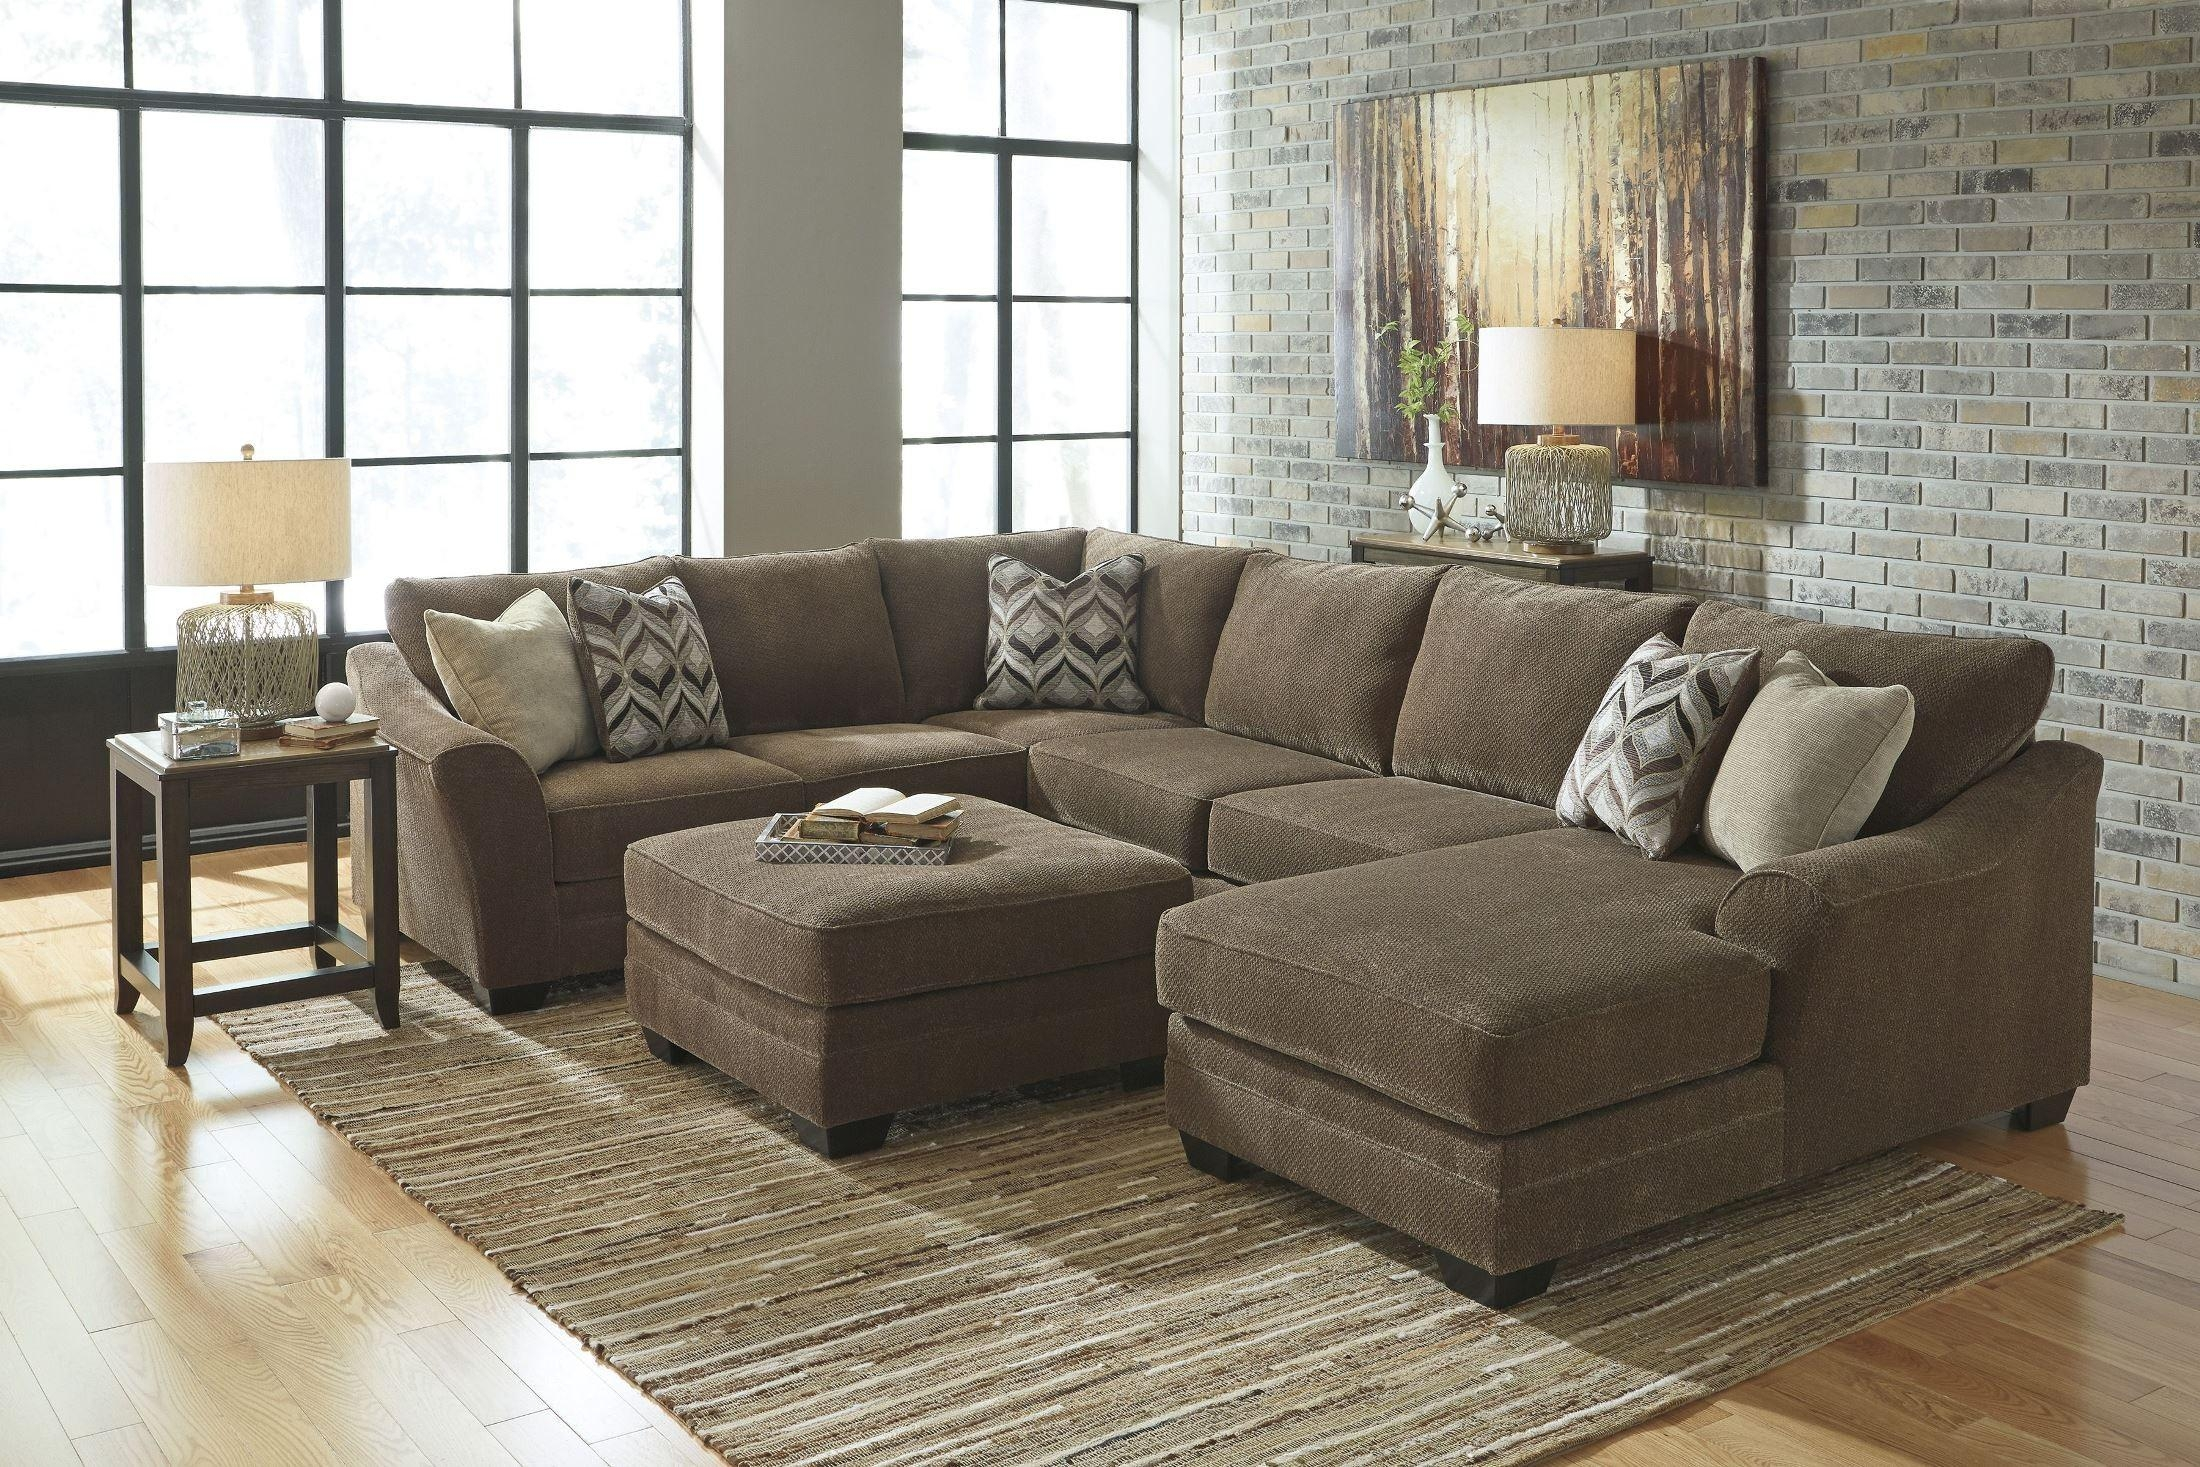 Sofas: Oversized Sofas | Sectional Couch For Sale | Oversized Sofa Inside Oversized Sofa Chairs (View 14 of 20)